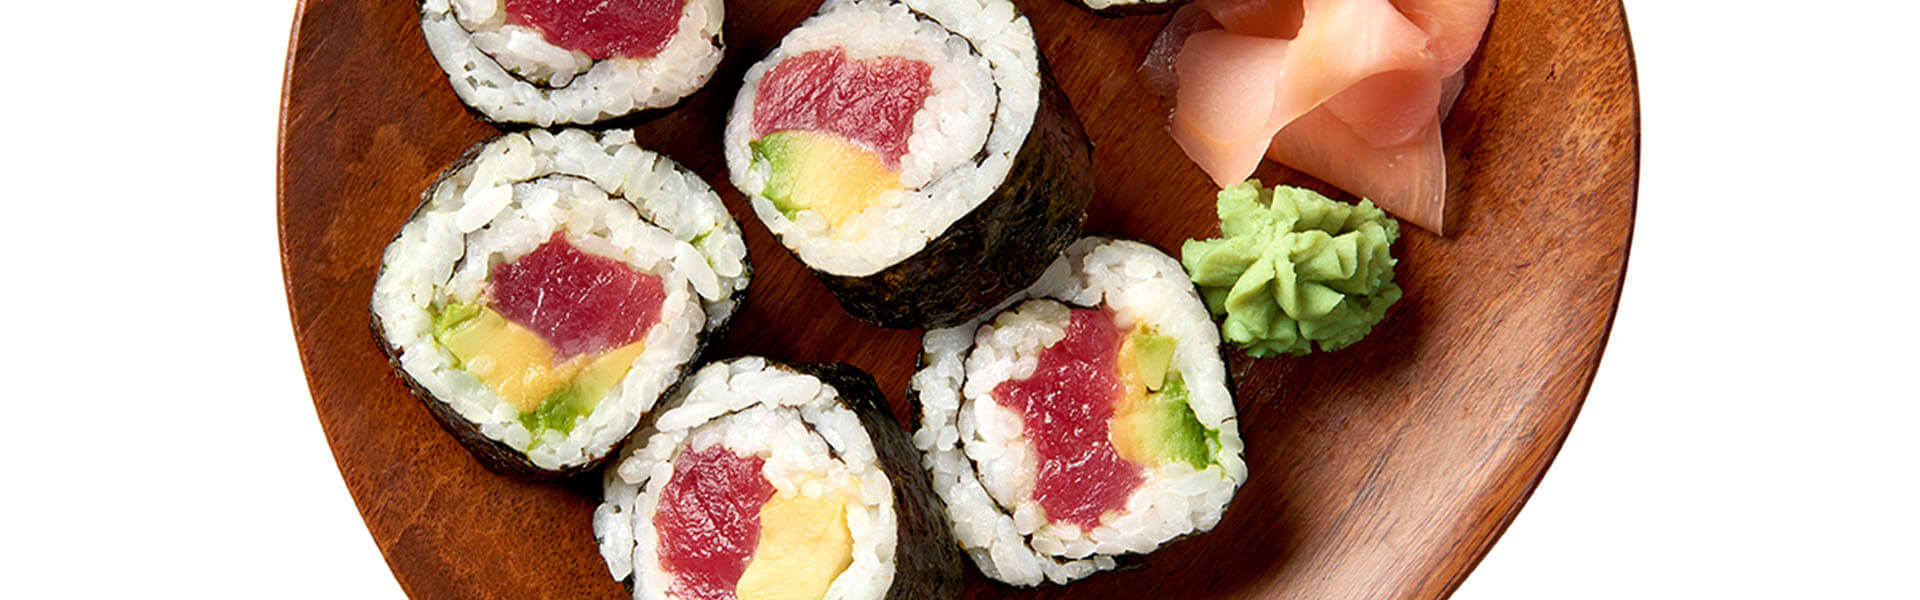 Sushi from Authentic Grains with Avocado & Tuna